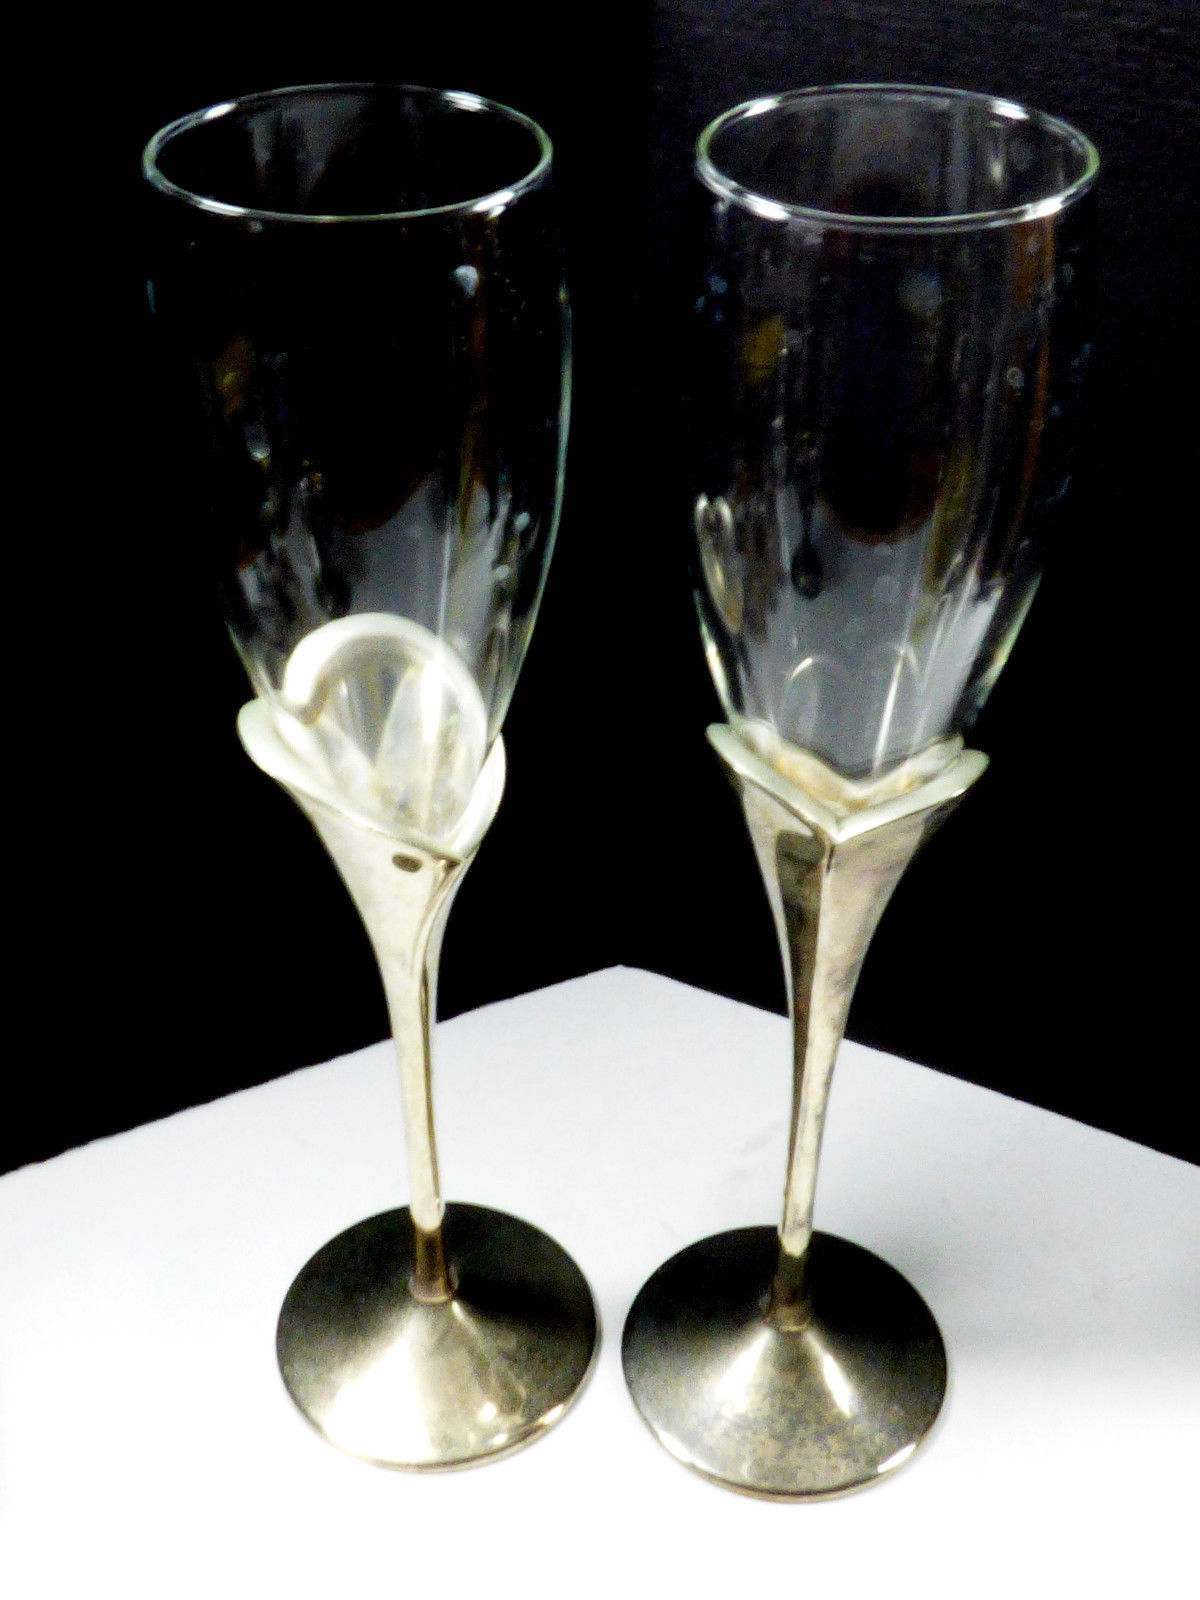 2 LENOX Crystal Champagne Flute Wedding Anniversary Silverplate Stems Heart image 3